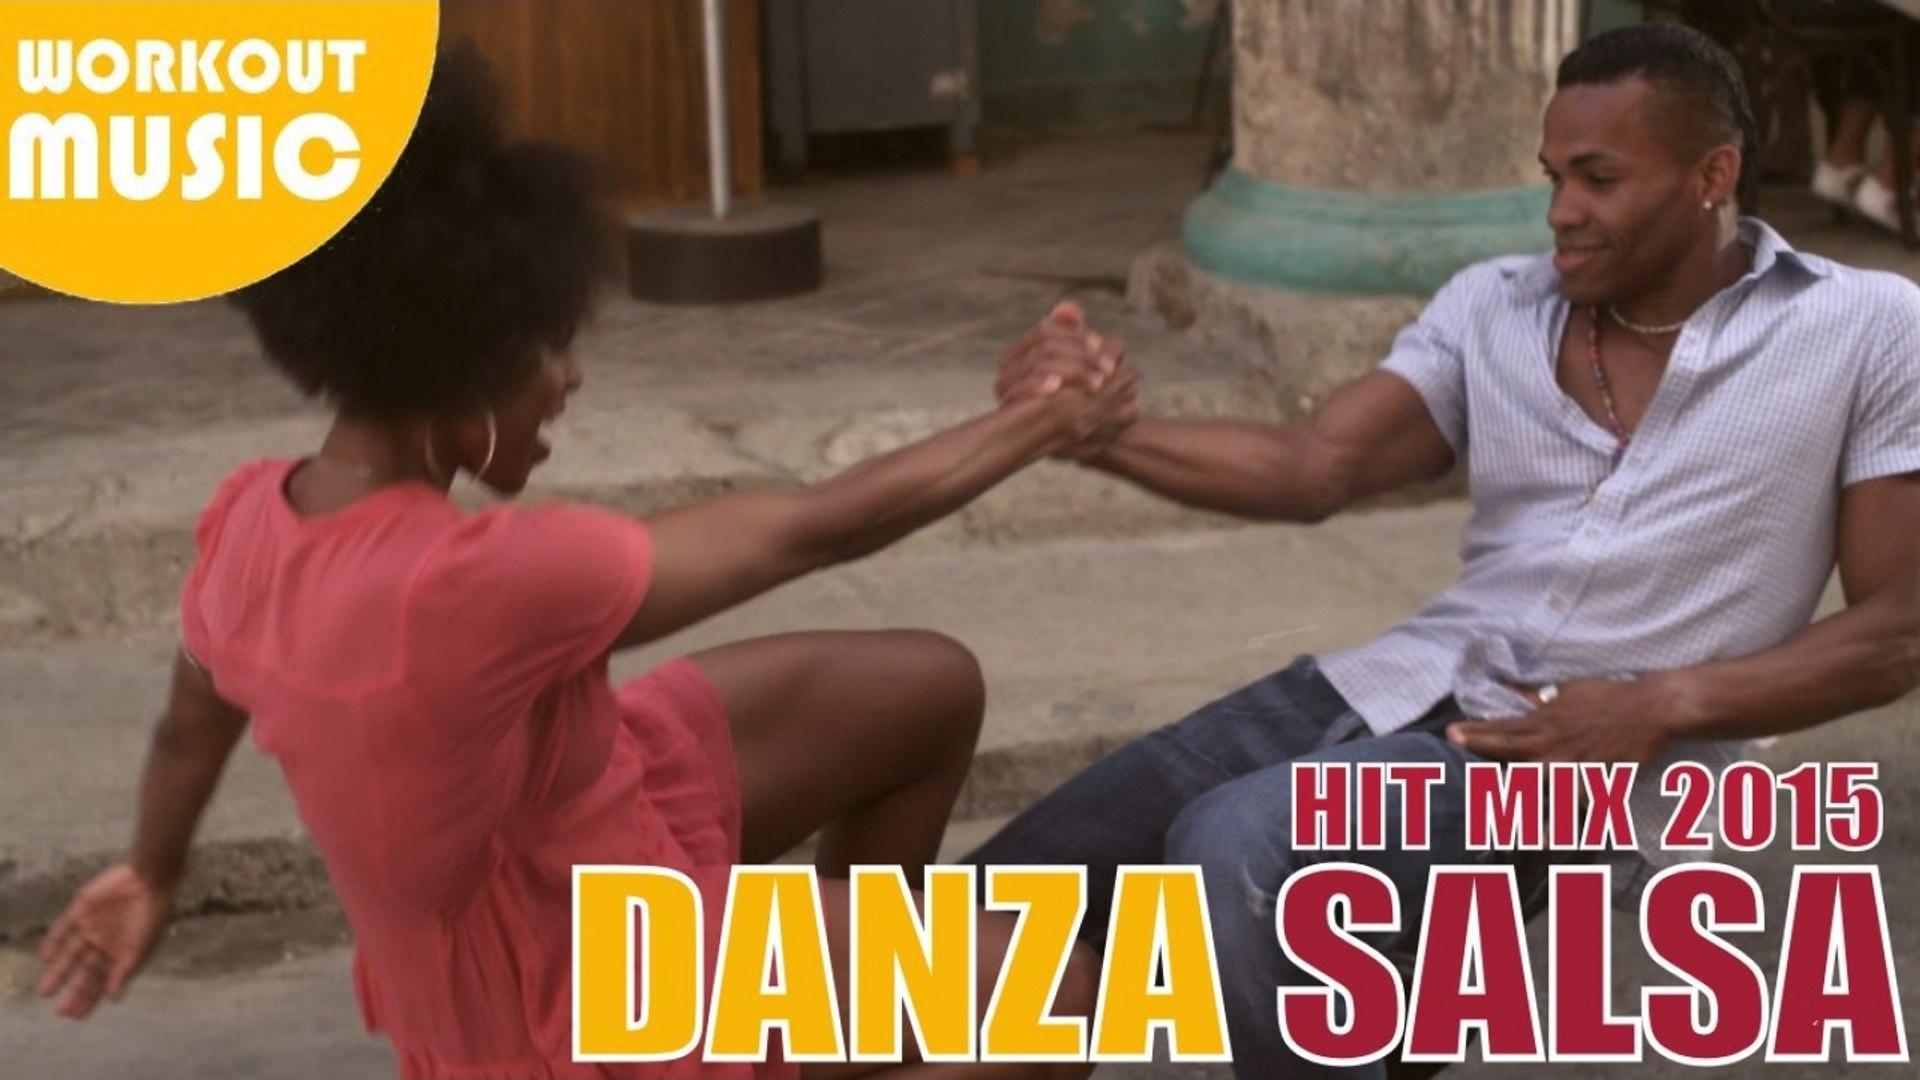 SALSA 2015 HIT MIX VOL. 1 ► BEST SALSA SONGS 2015 ► DANZA & ZUMBA 2015 WORKOUT